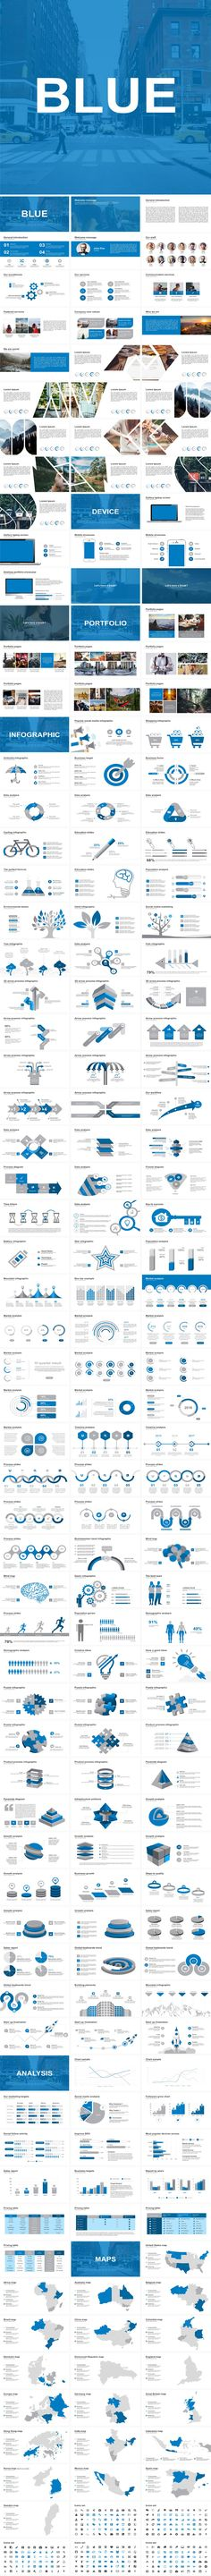 Buy Blue Powerpoint Template by AlekKsalll on GraphicRiver. You can complete your Presentation with this template, even you know of Powerpoint, because all of the elements a. Ppt Design, Business Powerpoint Templates, Keynote, Presentation, Blue